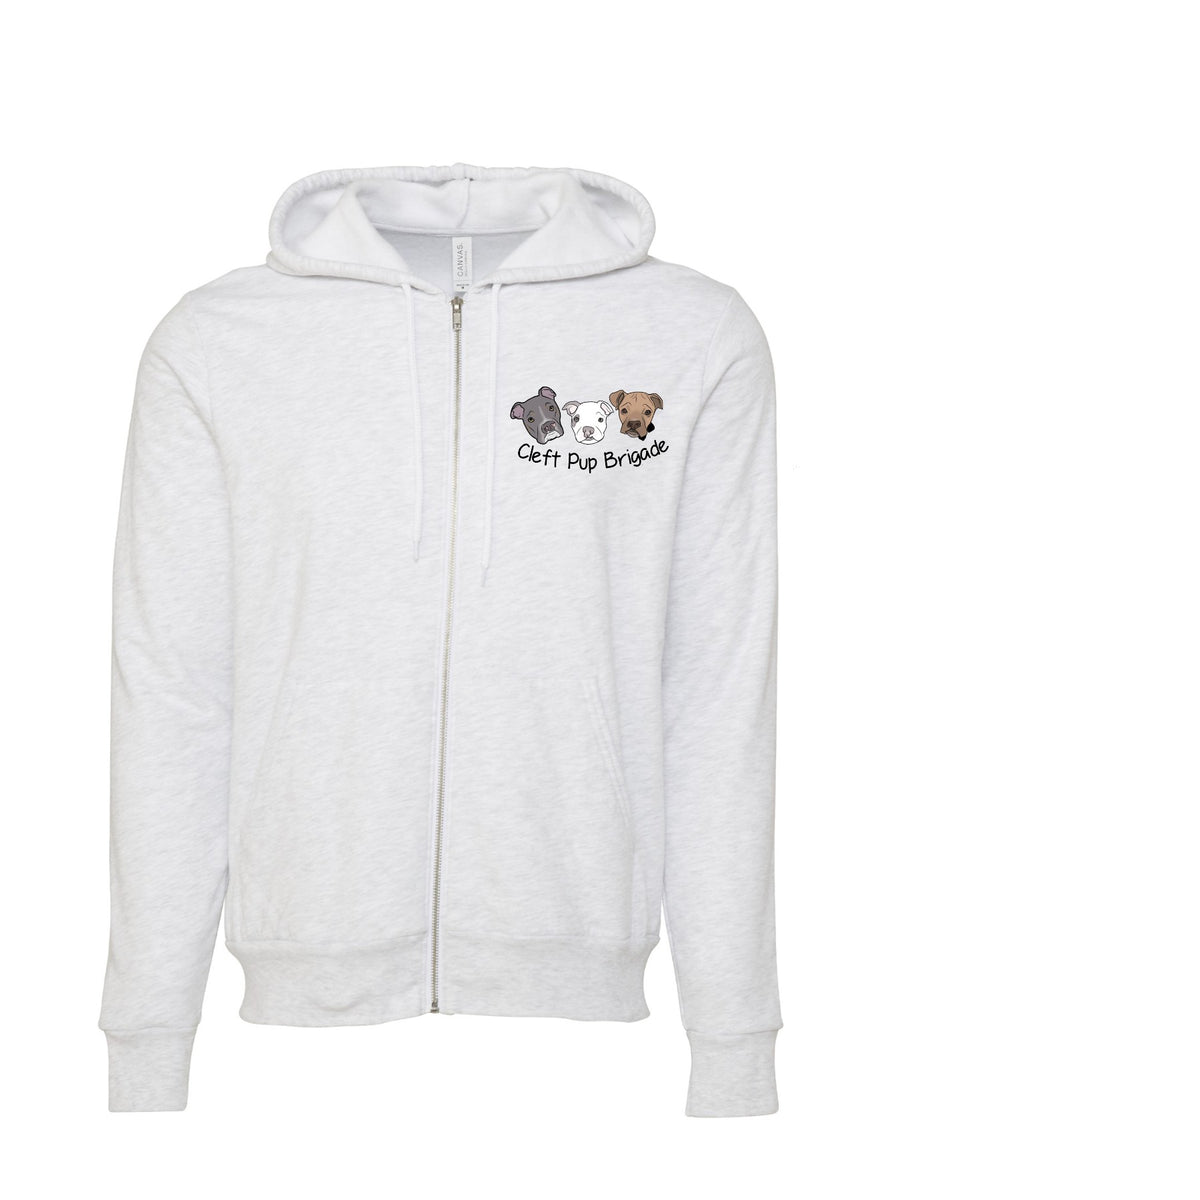 New Cleft Pup Brigade Sponge Fleece Full-Zip Hoodie